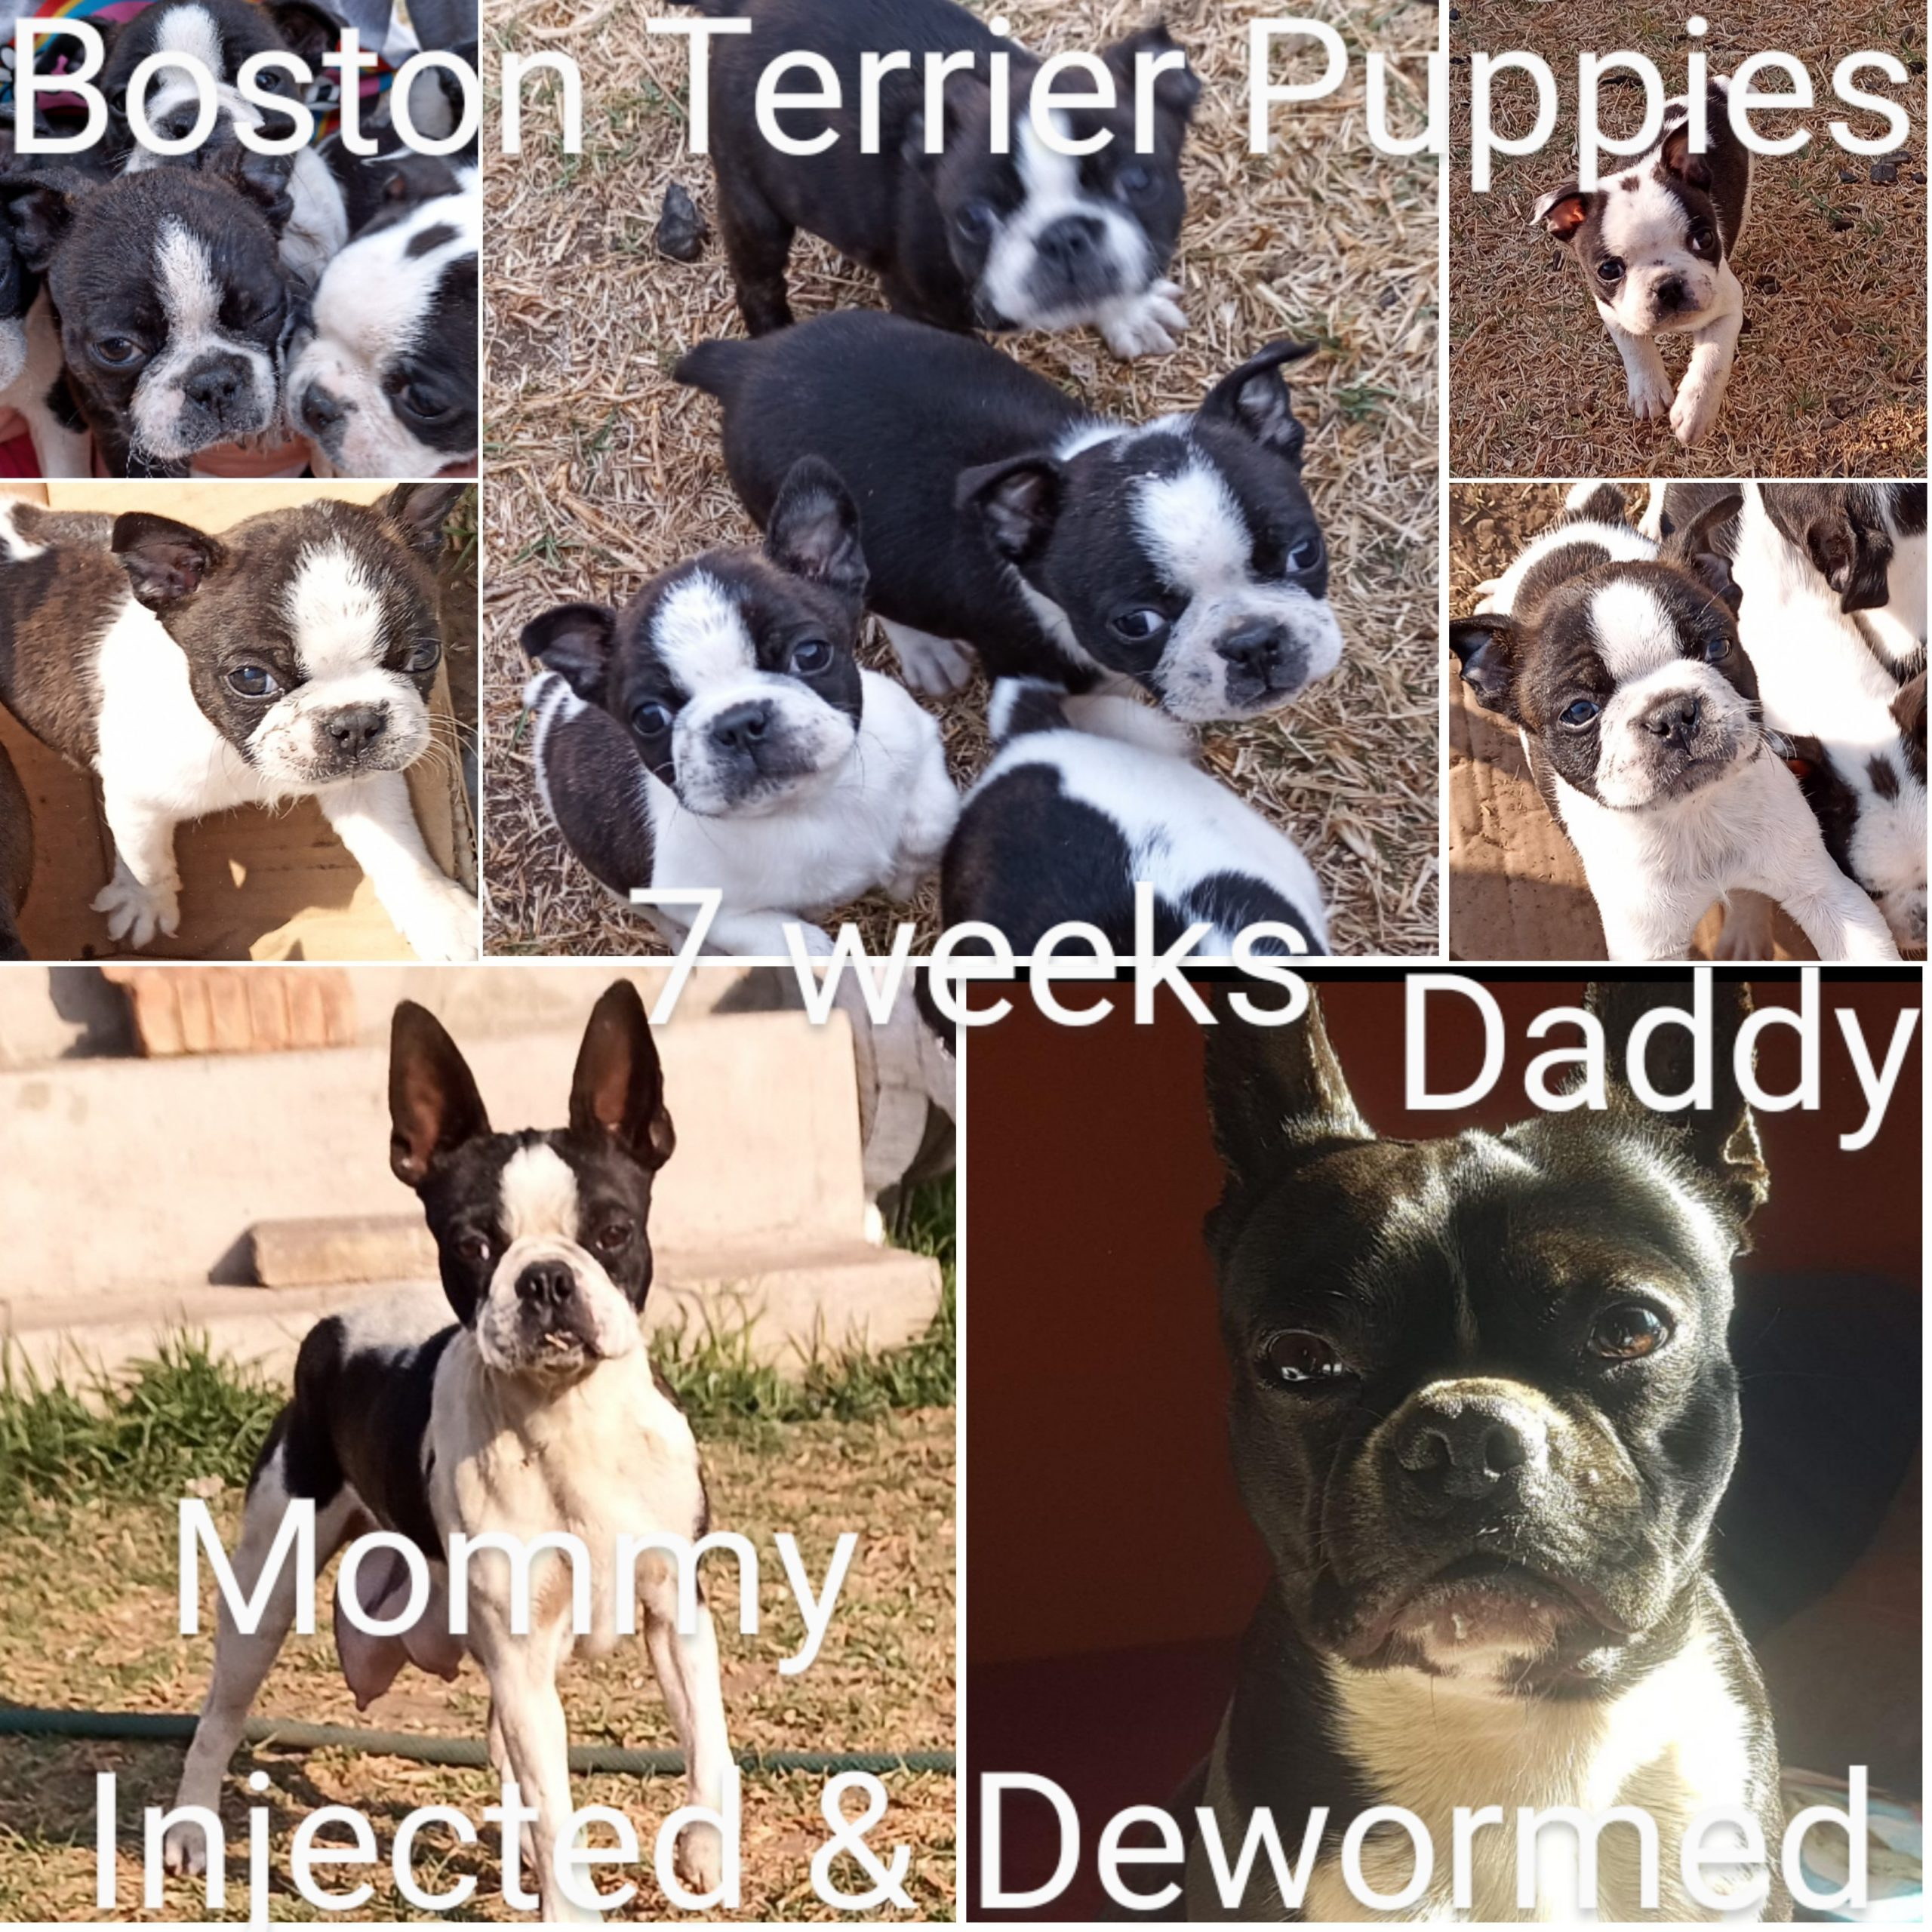 Boston Terrier Puppies in Other (26/09/2021)